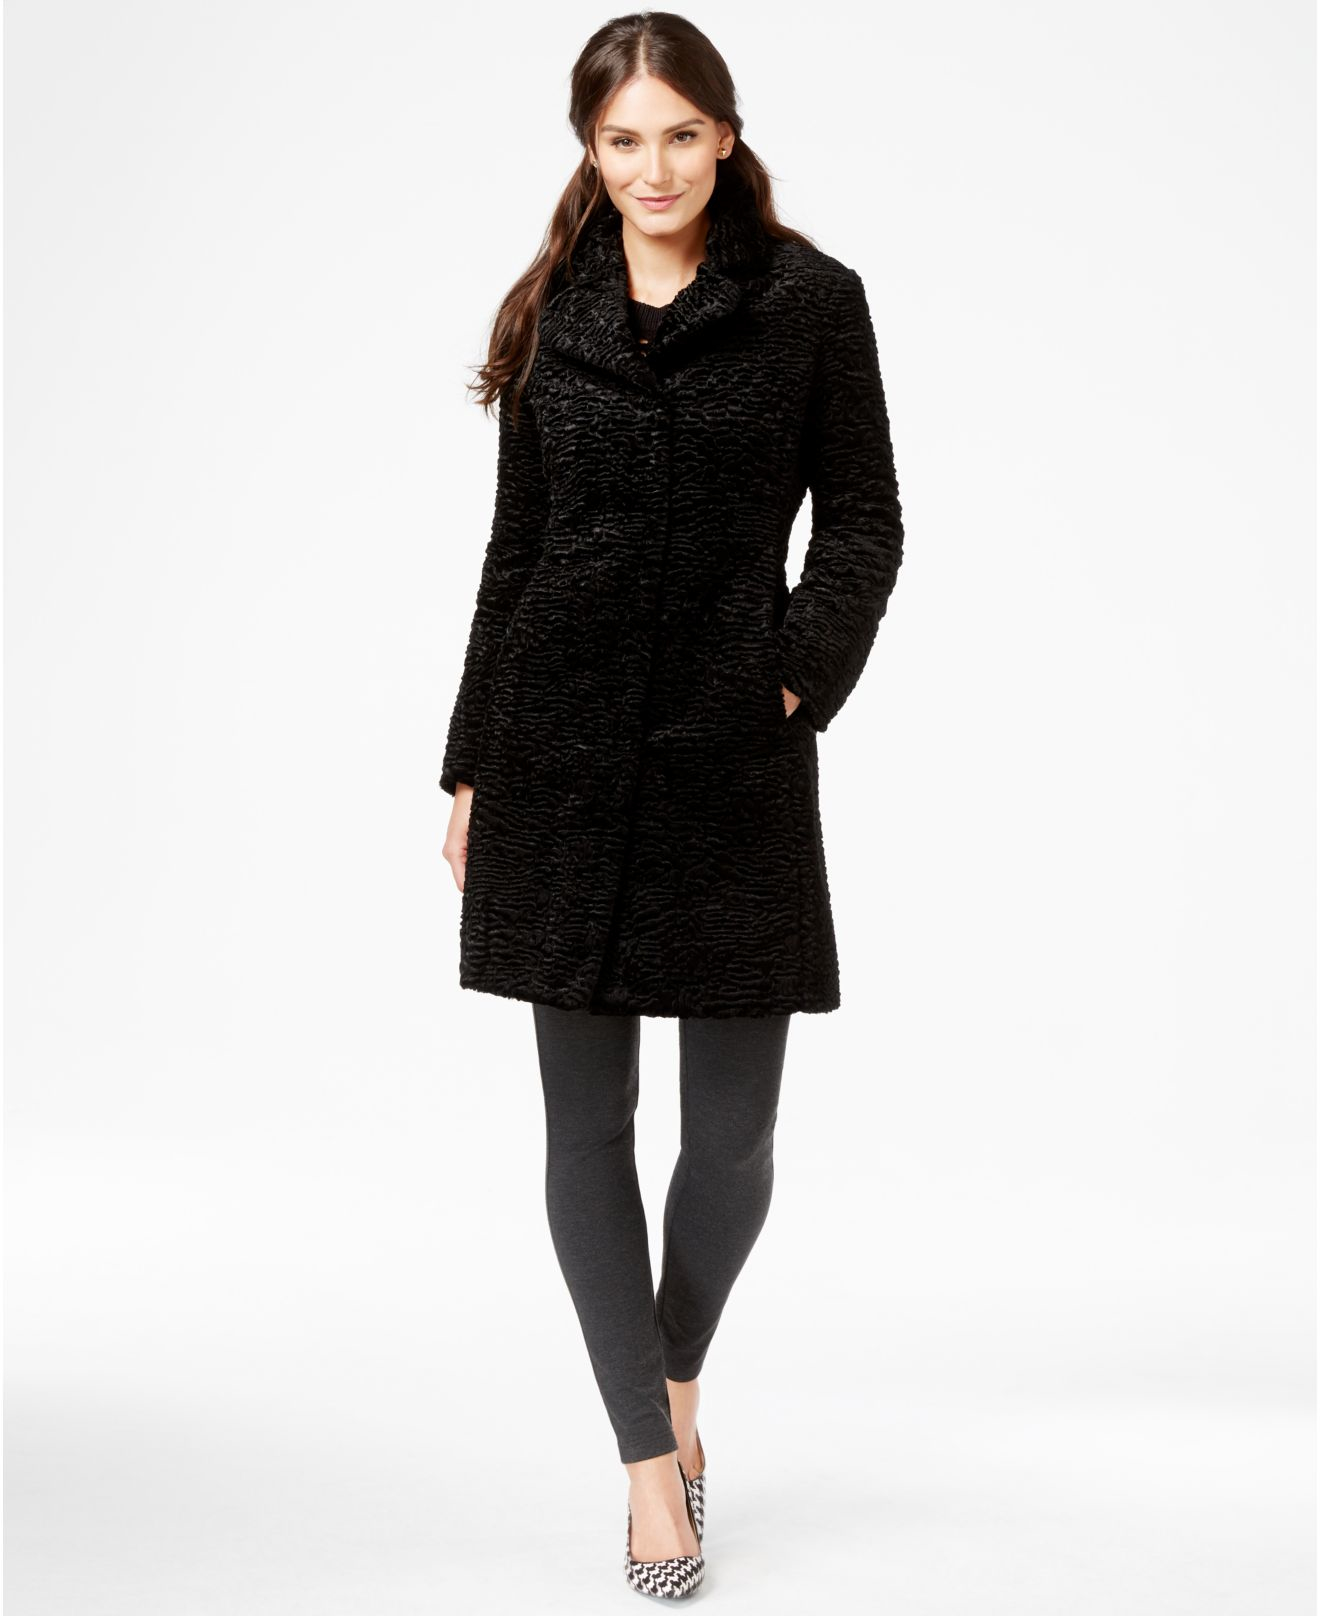 Find Jones New York women's clothes at ShopStyle,+ followers on Twitter.